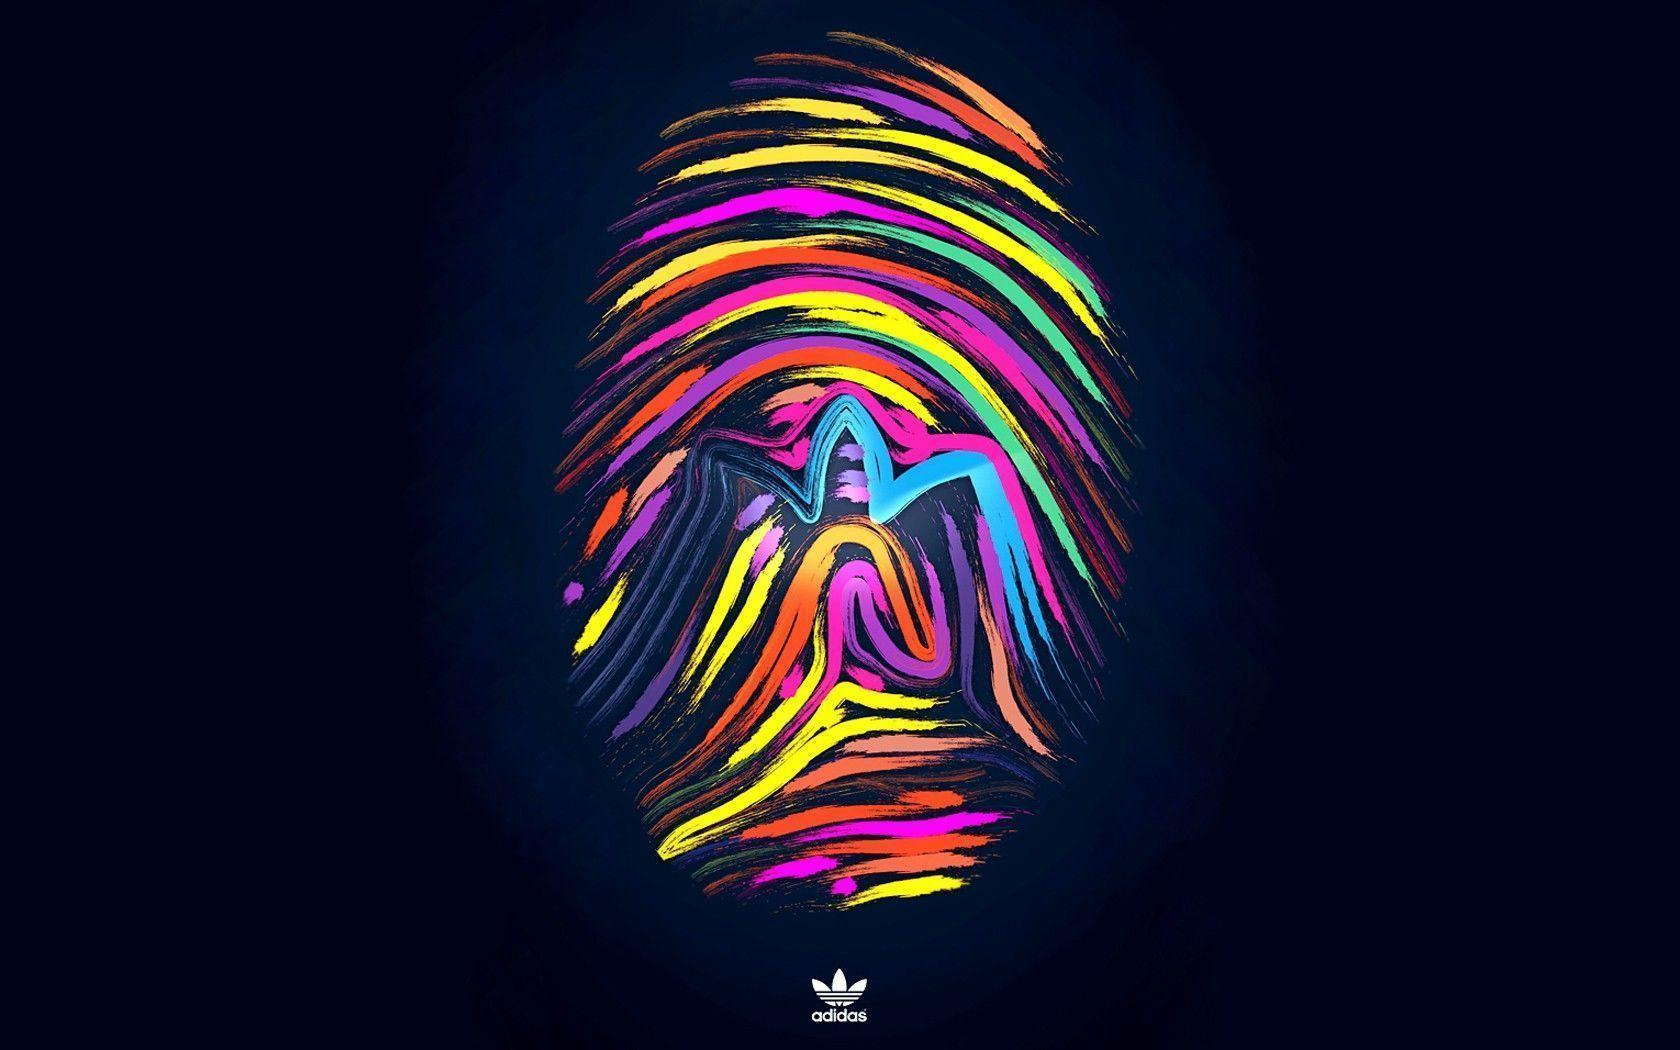 Wallpapers For > Adidas Wallpaper For Iphone 5